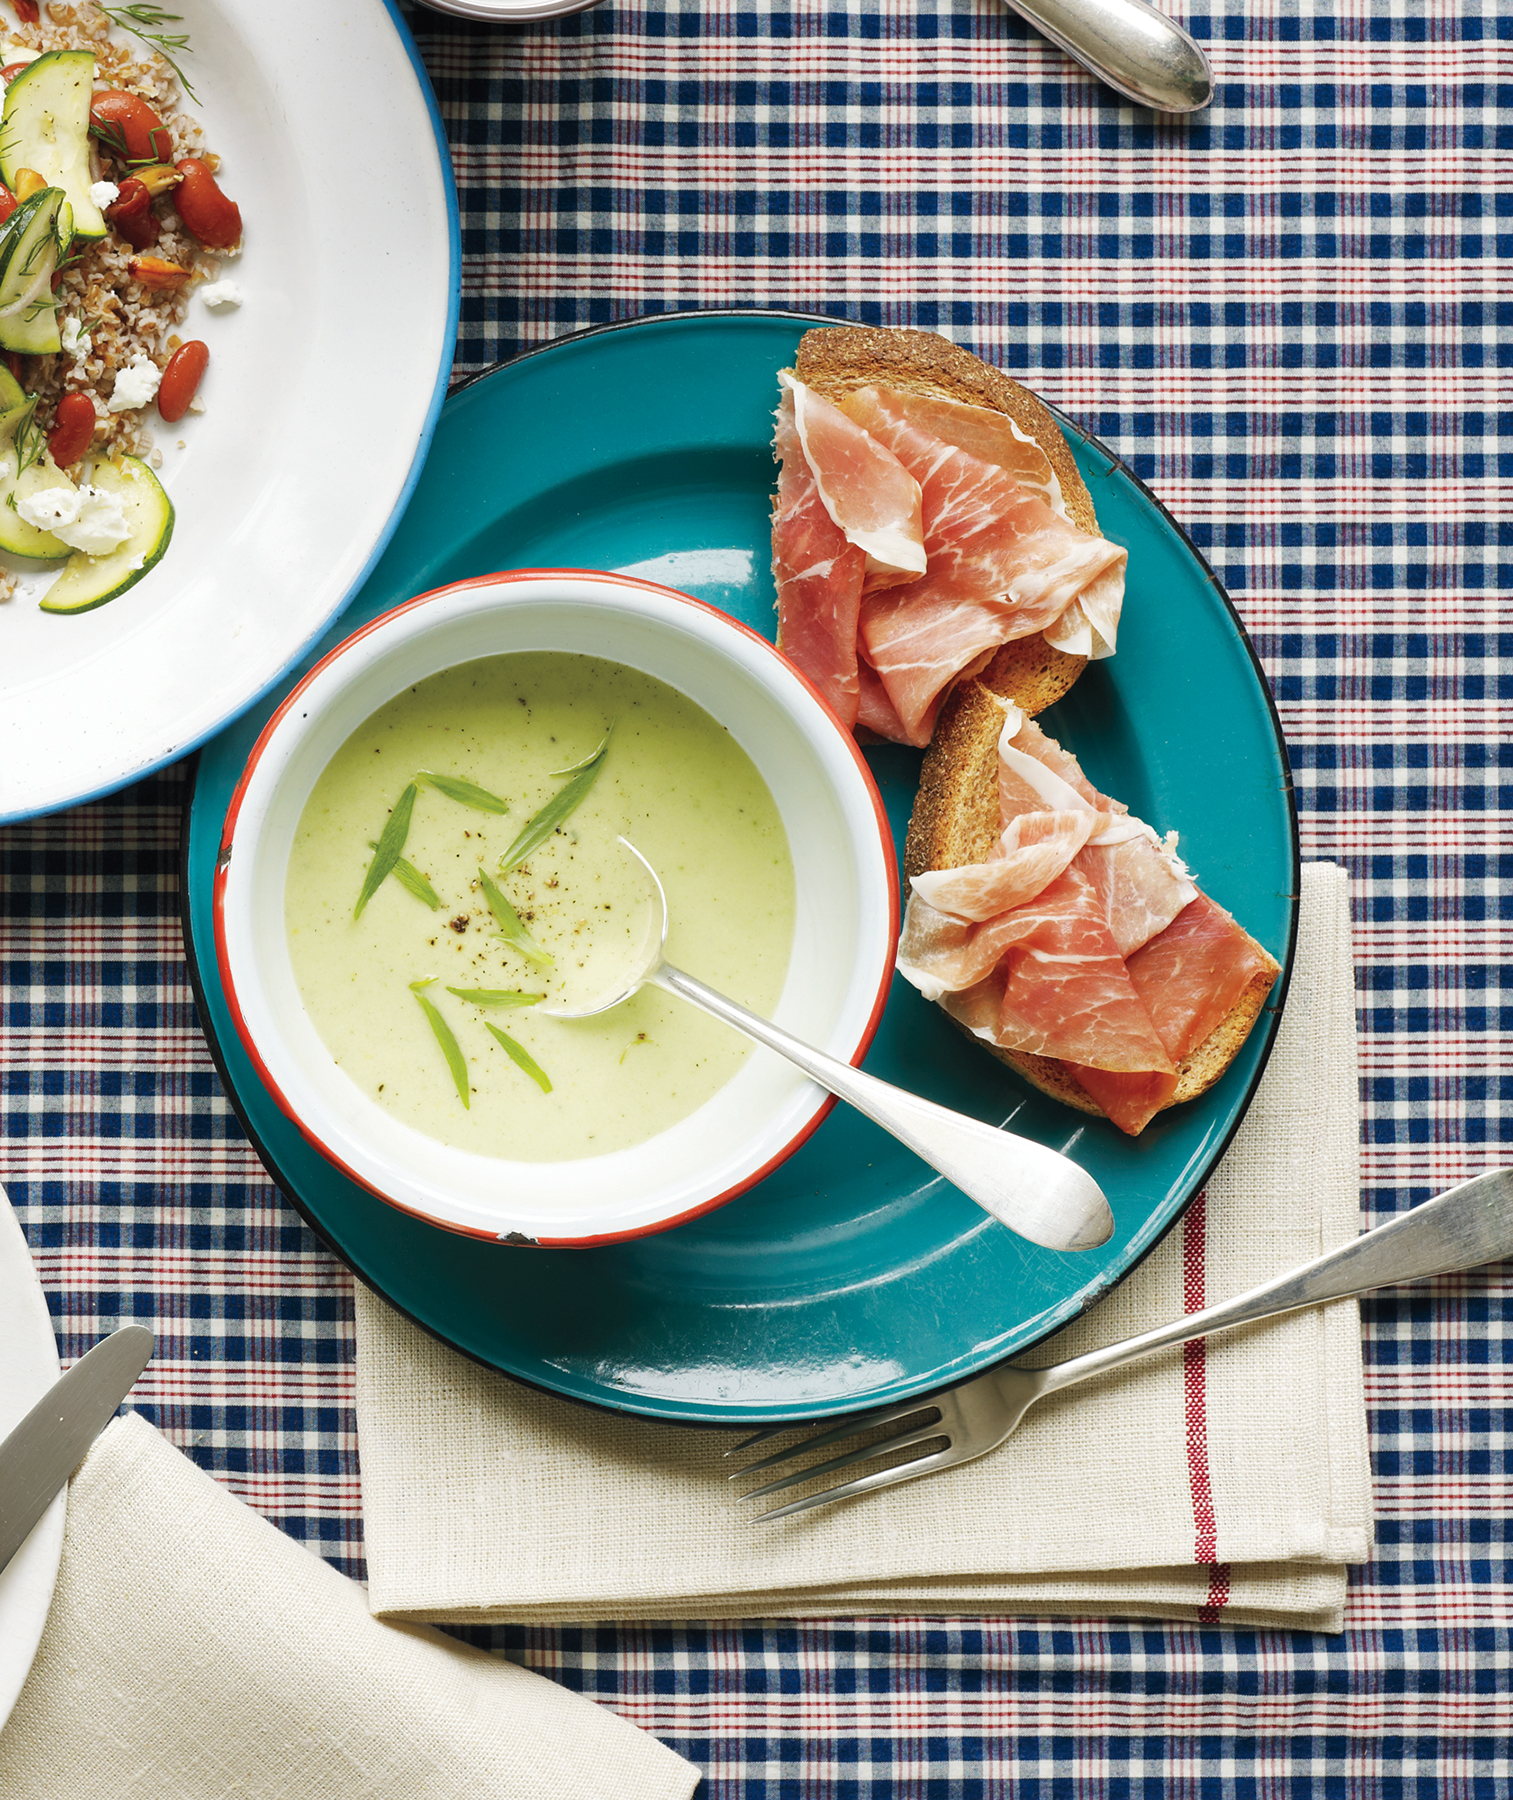 Cucumber-Avocado Soup With Prosciutto Toasts